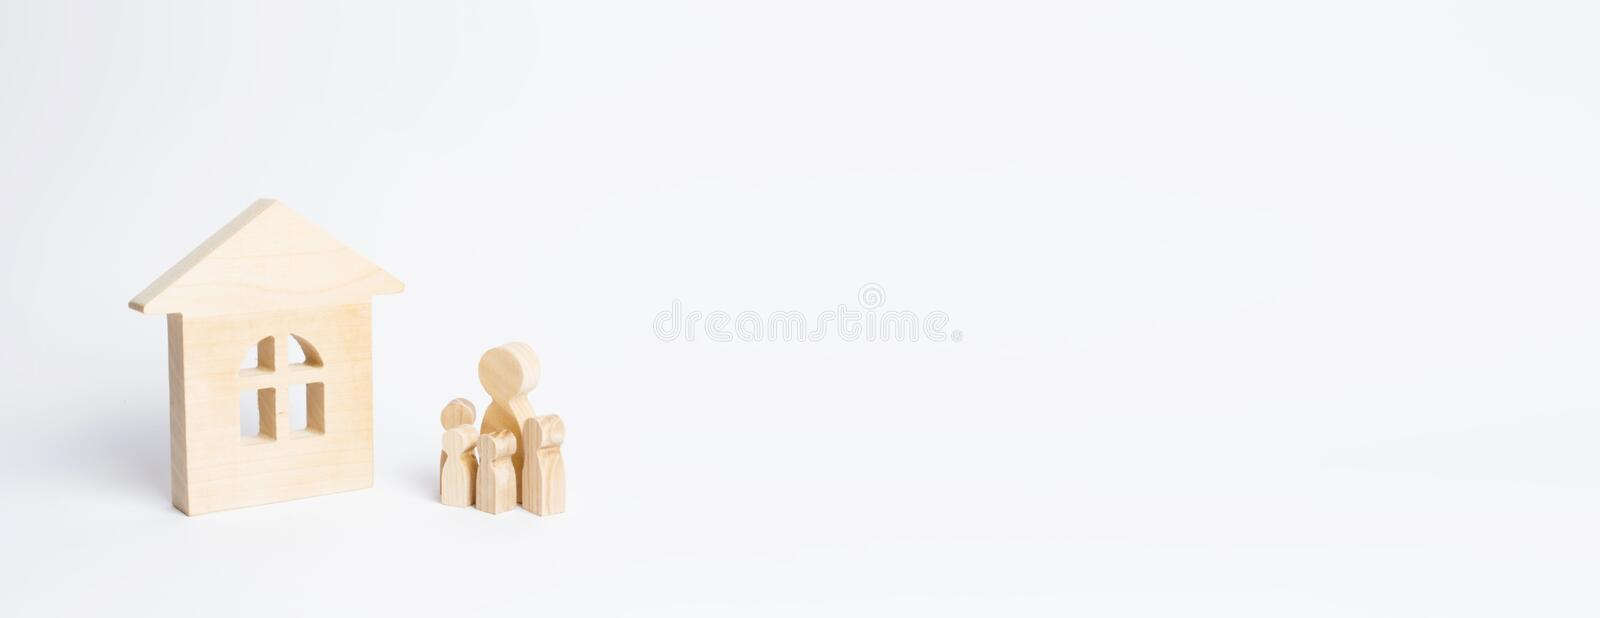 Figures of people with children stand near a wooden house on a white background. The concept of real estate and affordable housing stock photo